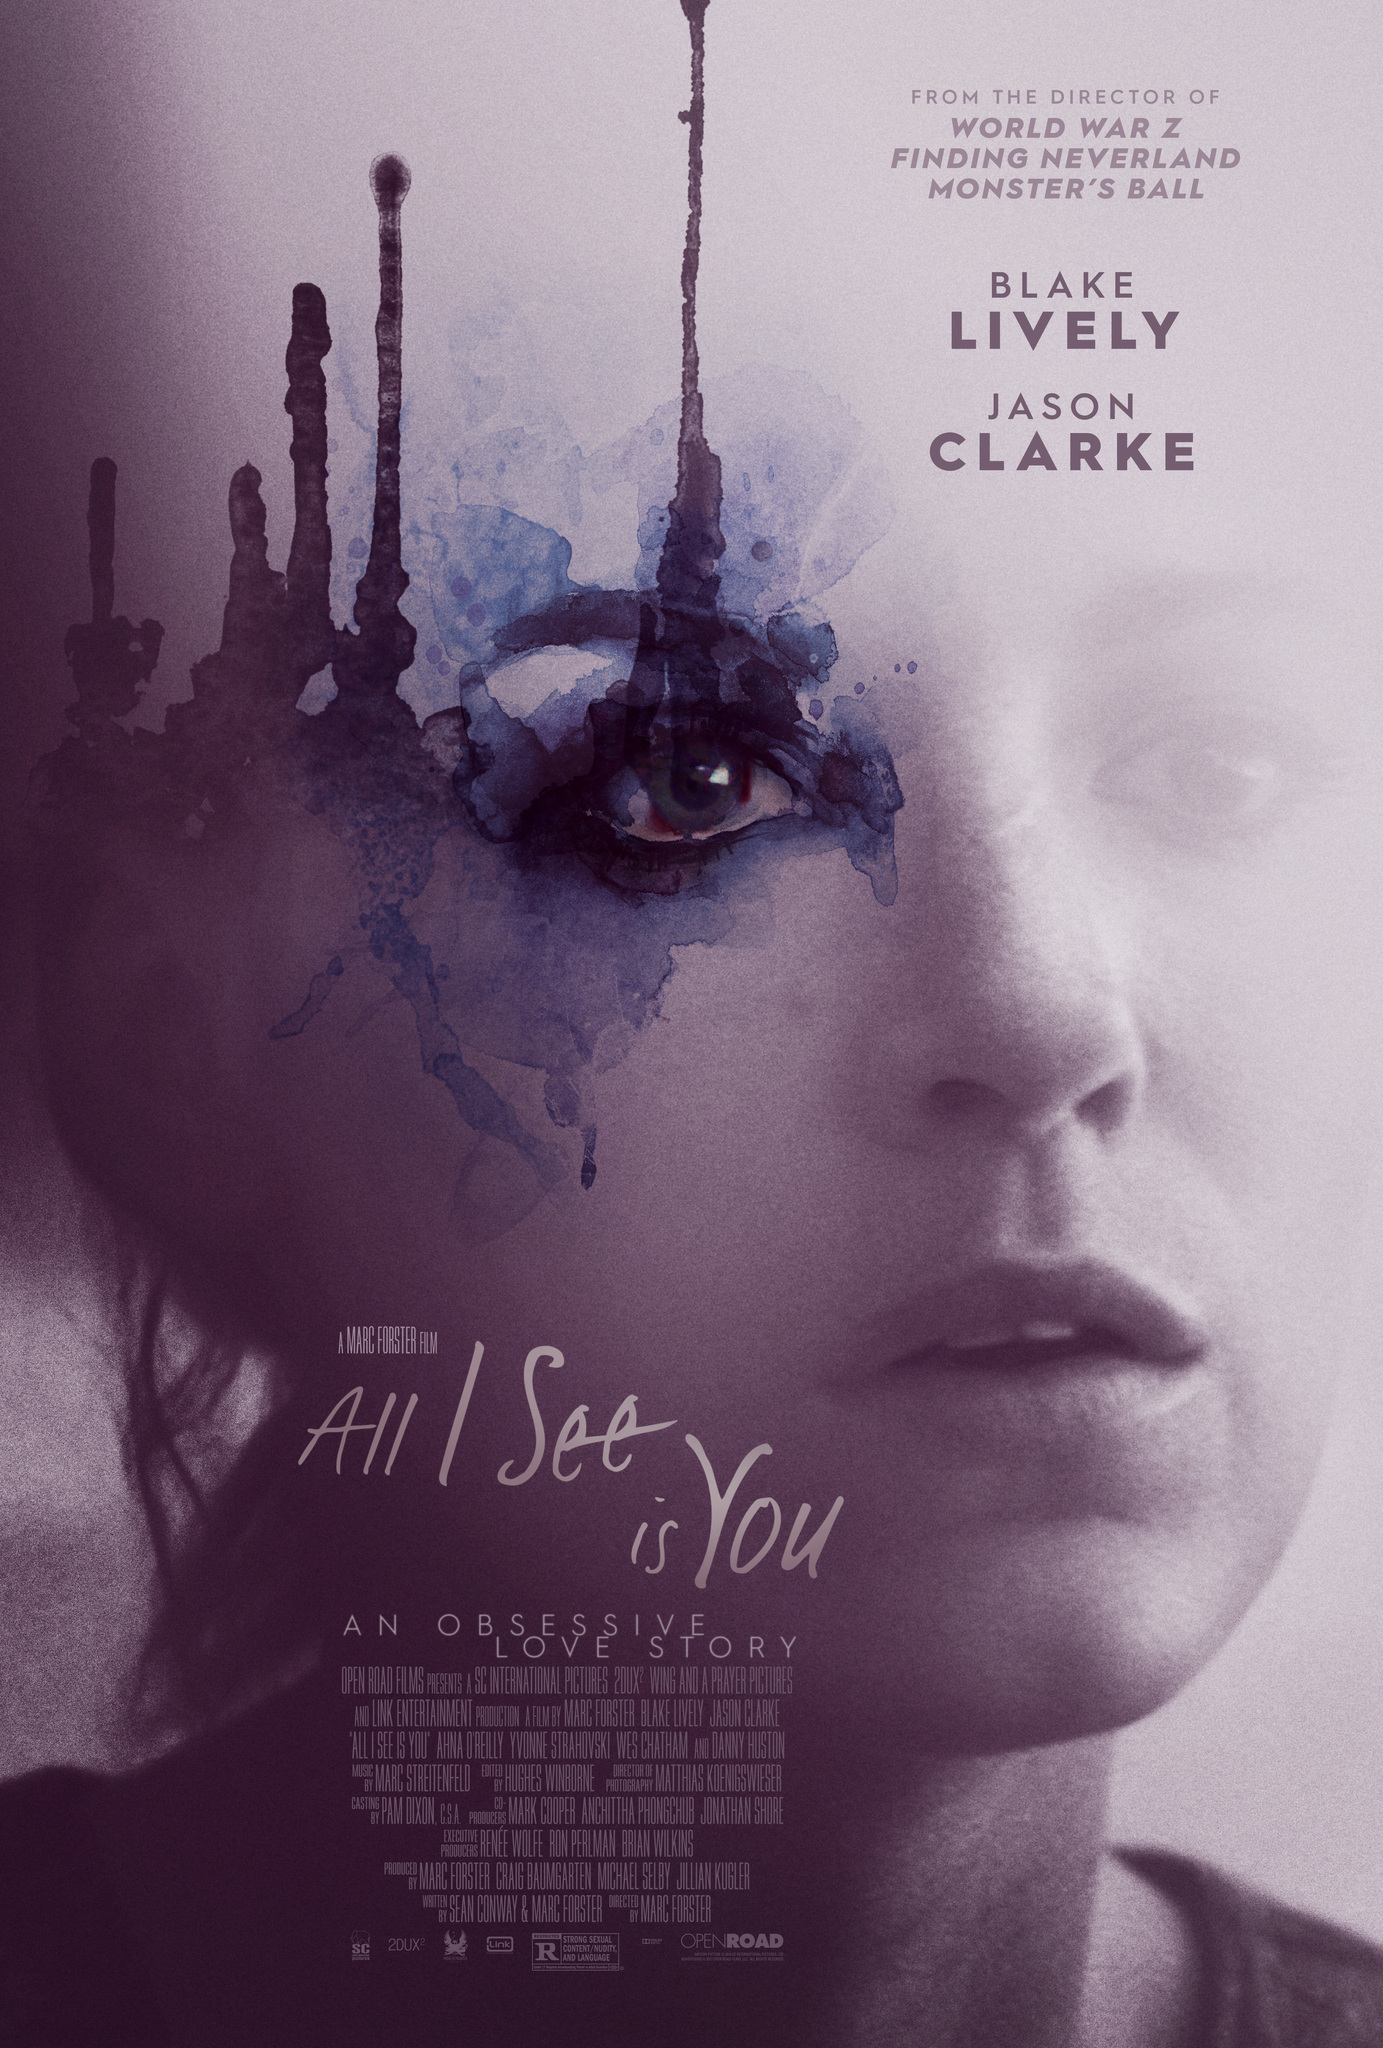 MATAU TIK TAVE (2016) / ALL I SEE IS YOU